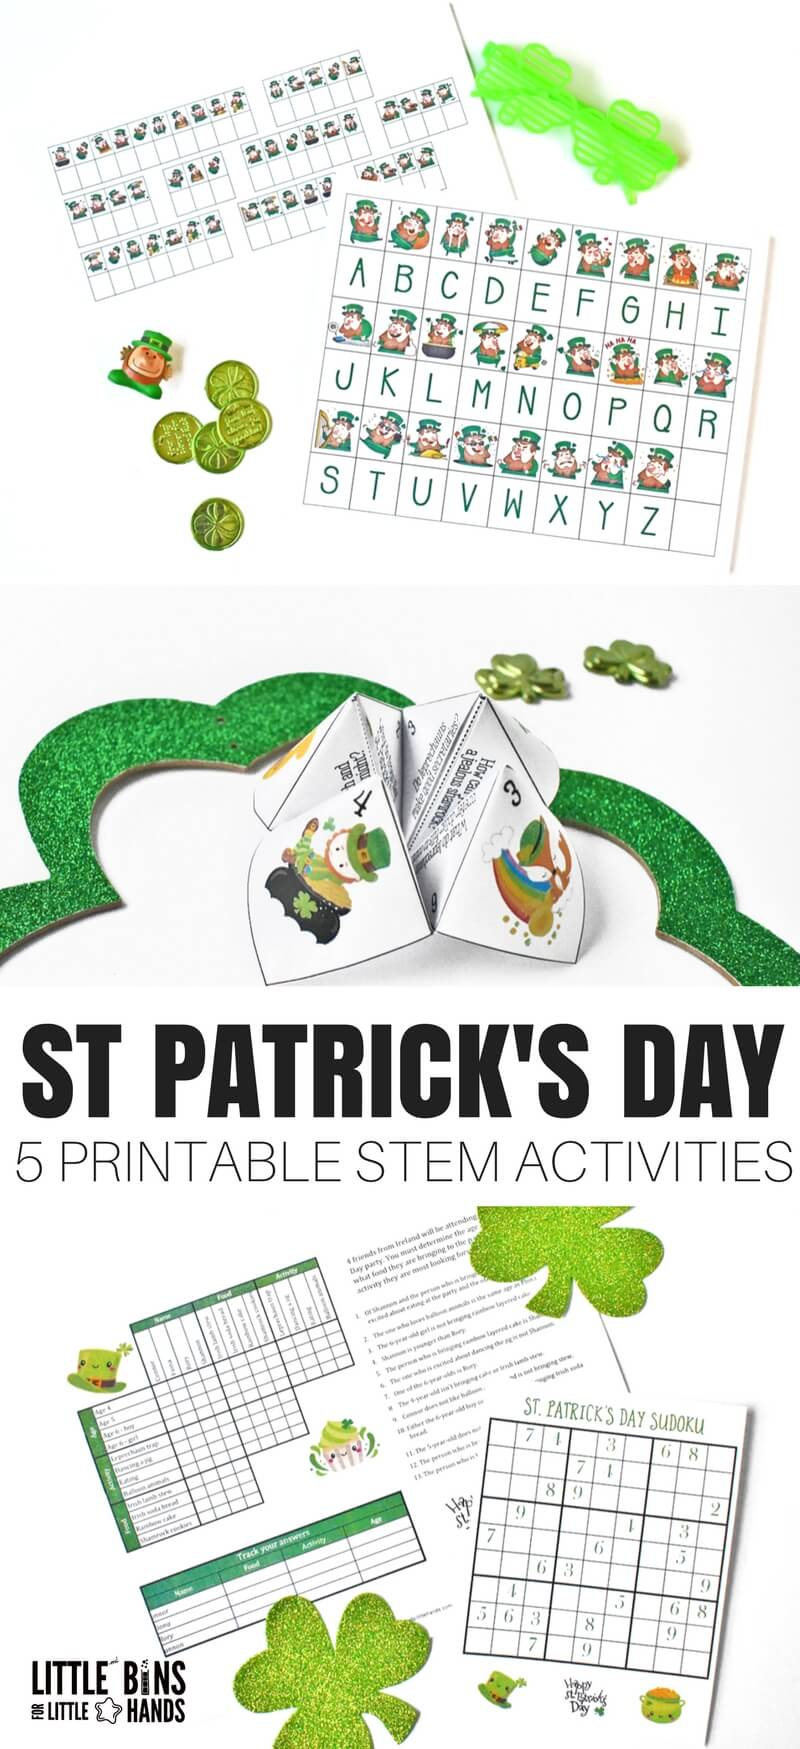 We added a few fun printable St Patricks Day STEM activities or logic type puzzles to the mix this season just for a little something different. Let us know how you like them! We love to give our everyday science and STEM fun twists with holiday themes.